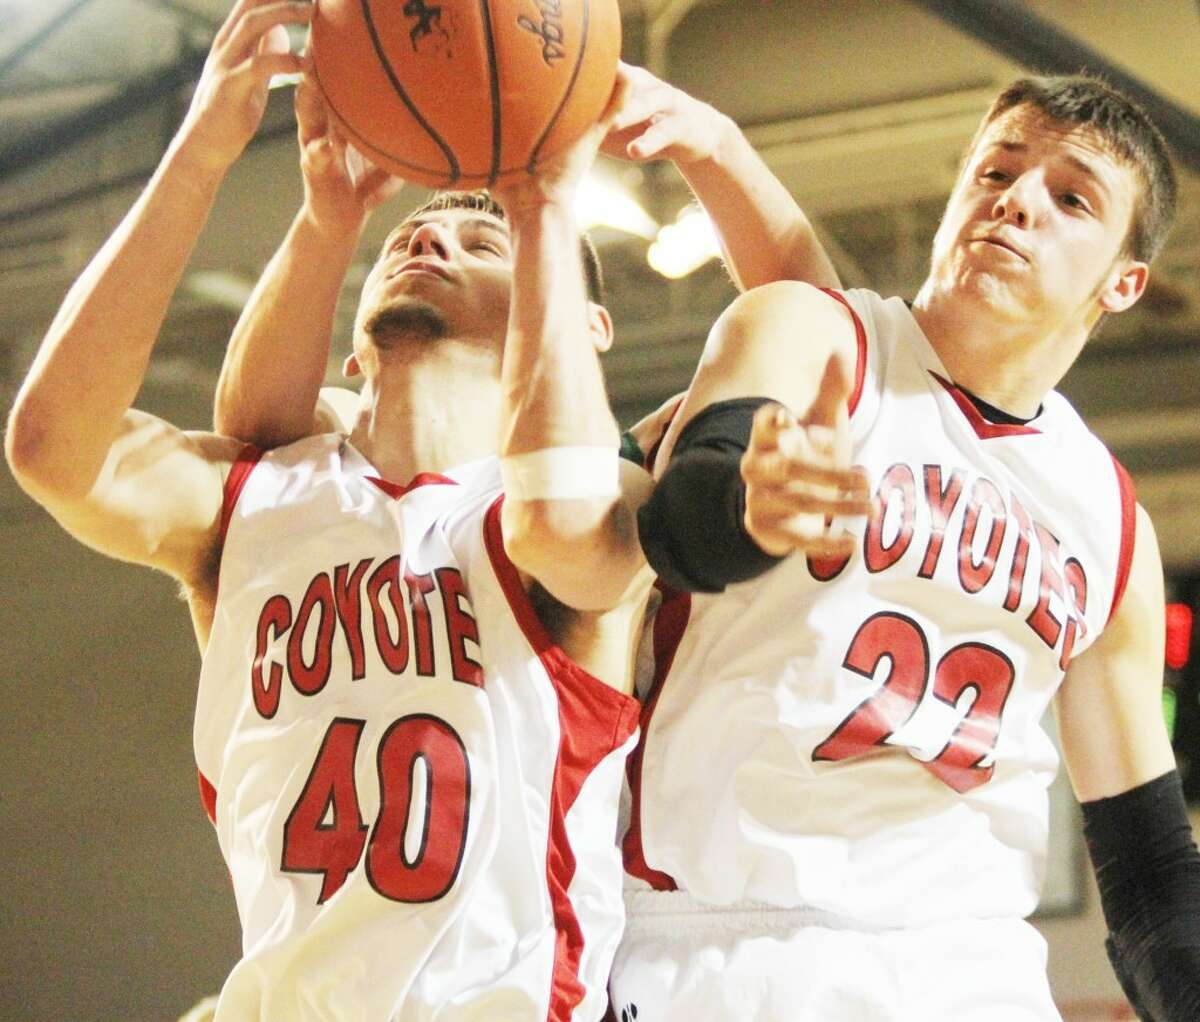 UP FOR GRABS: Reed City's Jake Vincent (left) and Kyle Wright battle for a rebound against Clare during the the Class B district semifinal. (Herald Review photo/Bob Allan)